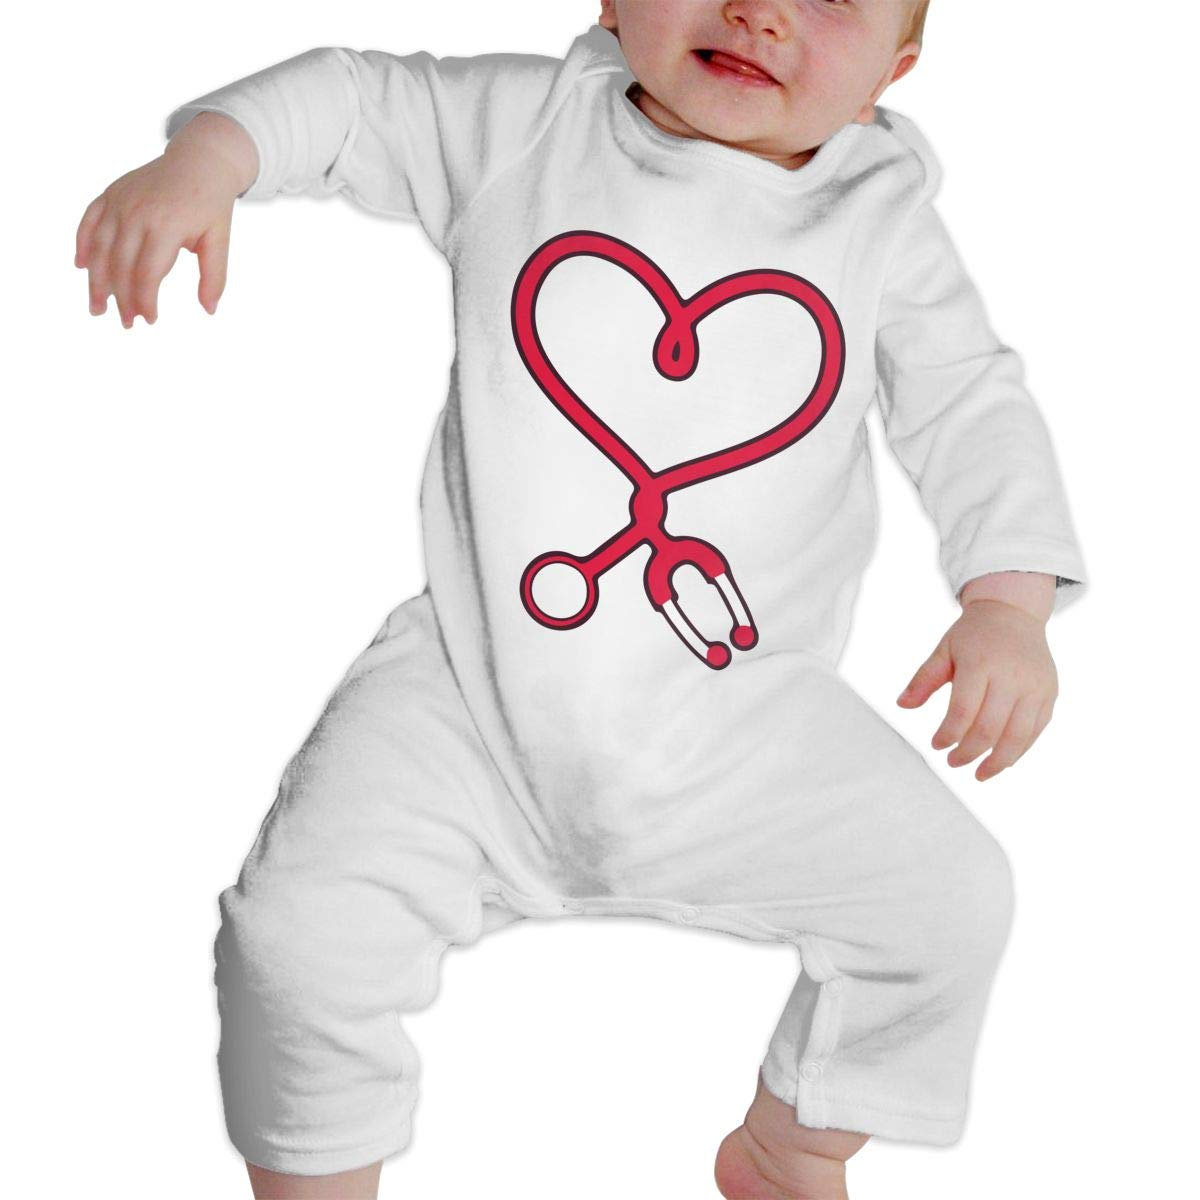 A1BY-5US Newborn Infant Baby Girls Boys Romper Jumpsuit Nurse Heart Stethoscope Cotton Long Sleeve Baby Clothes